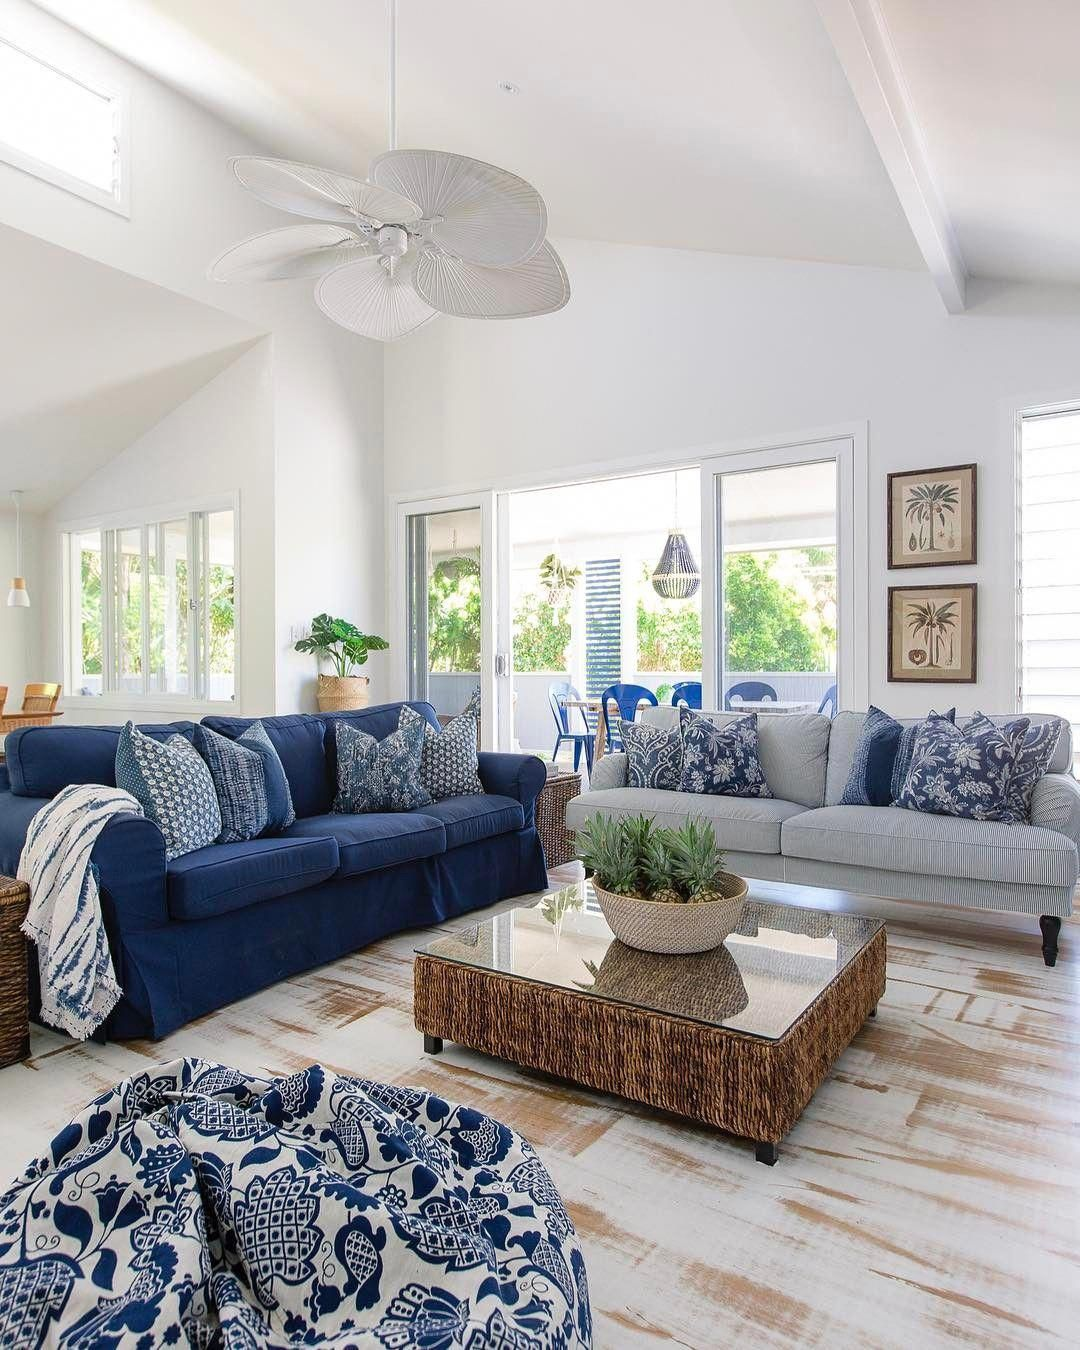 50 Lovely Rustic Coastal Living Room Design Ideas: Pin By Sheila Garcia On Home & Design In 2020